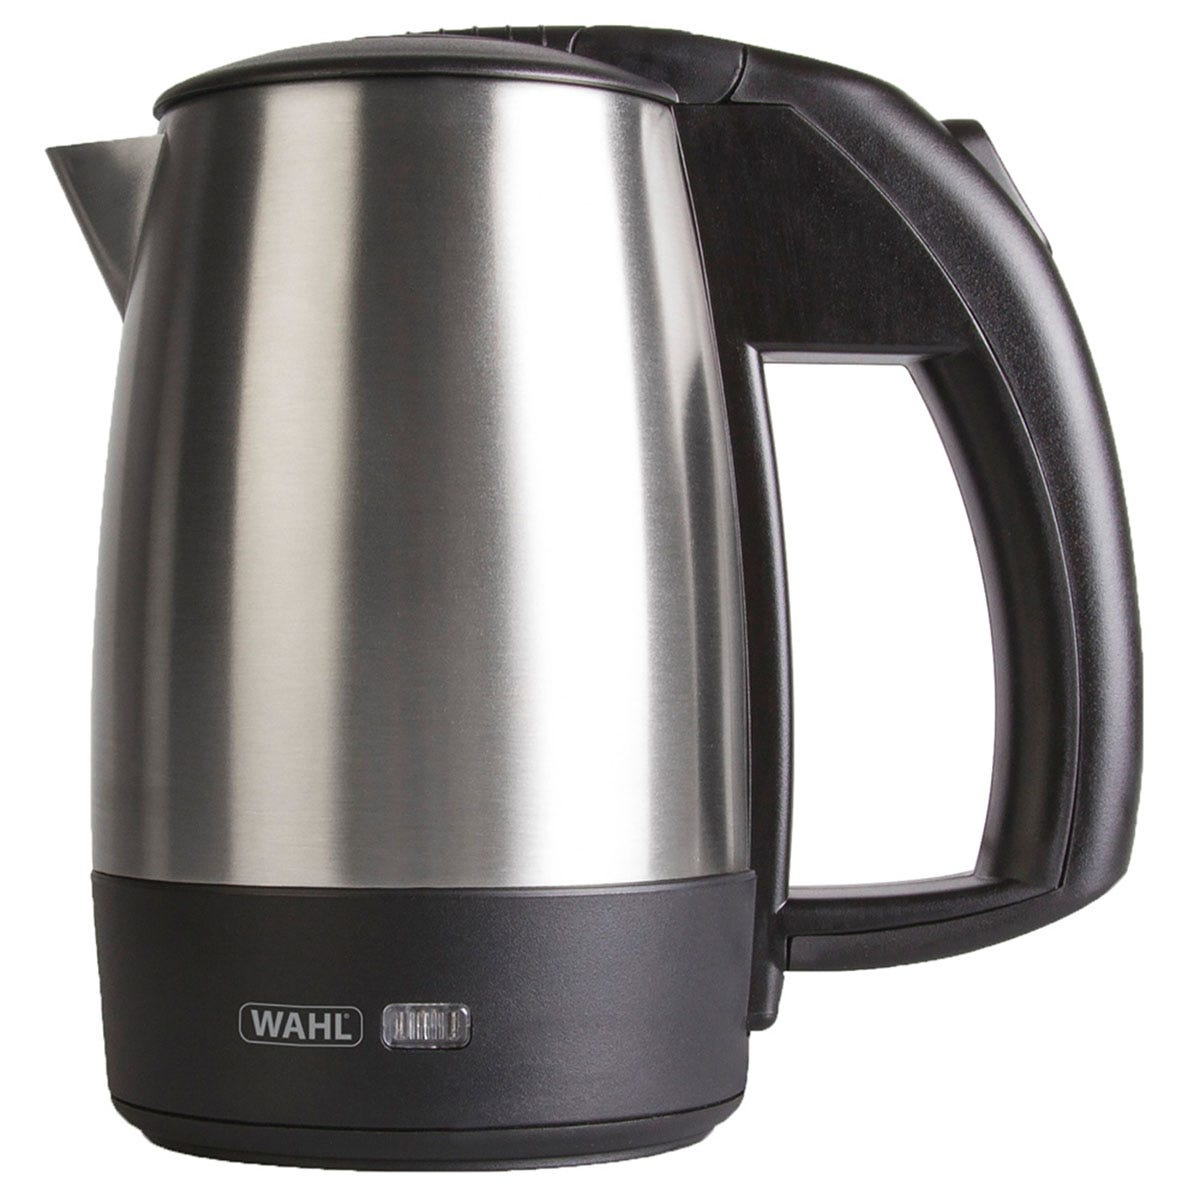 Wahl ZX946 Stainless Steel 0.5L Travel Kettle - Silver